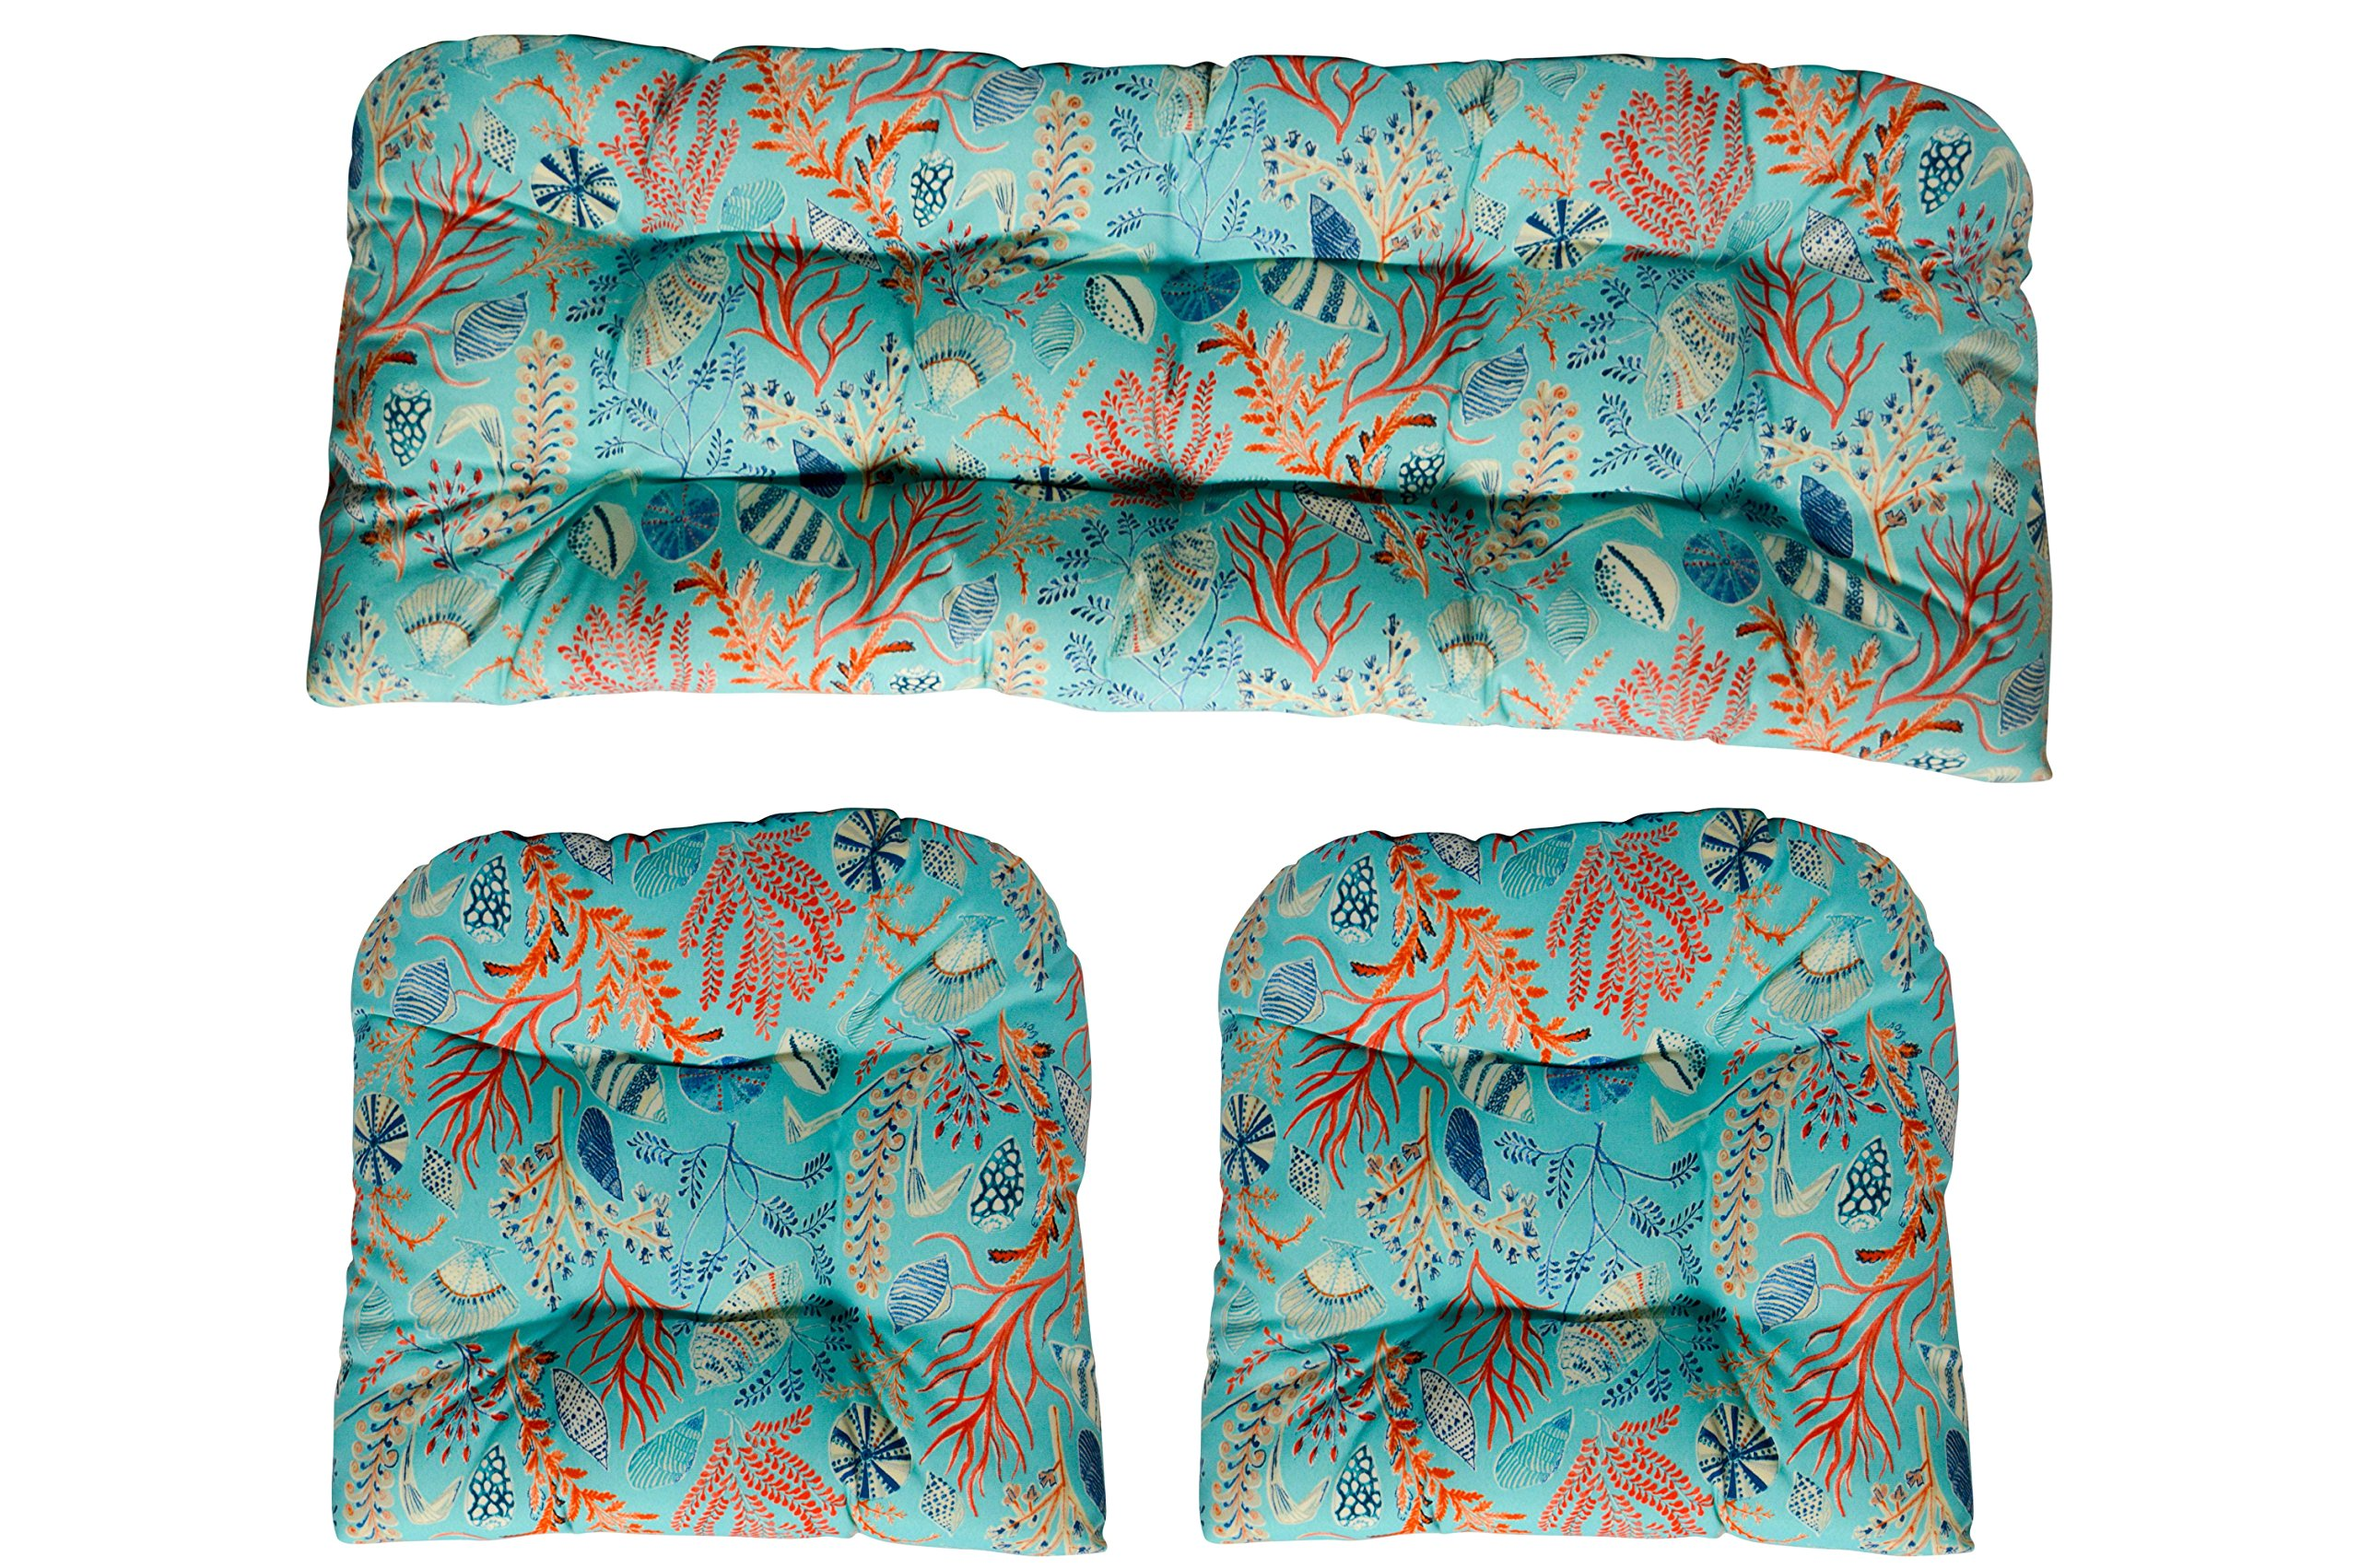 Red ~ Ocean Life ~ Coastal ~ Coral Reef Wicker Love Seat Settee Tufted Cushion ~ Blue Cream Orange Coral RSH Decor Indoor Outdoor LARGE 22 x 44 Peach White